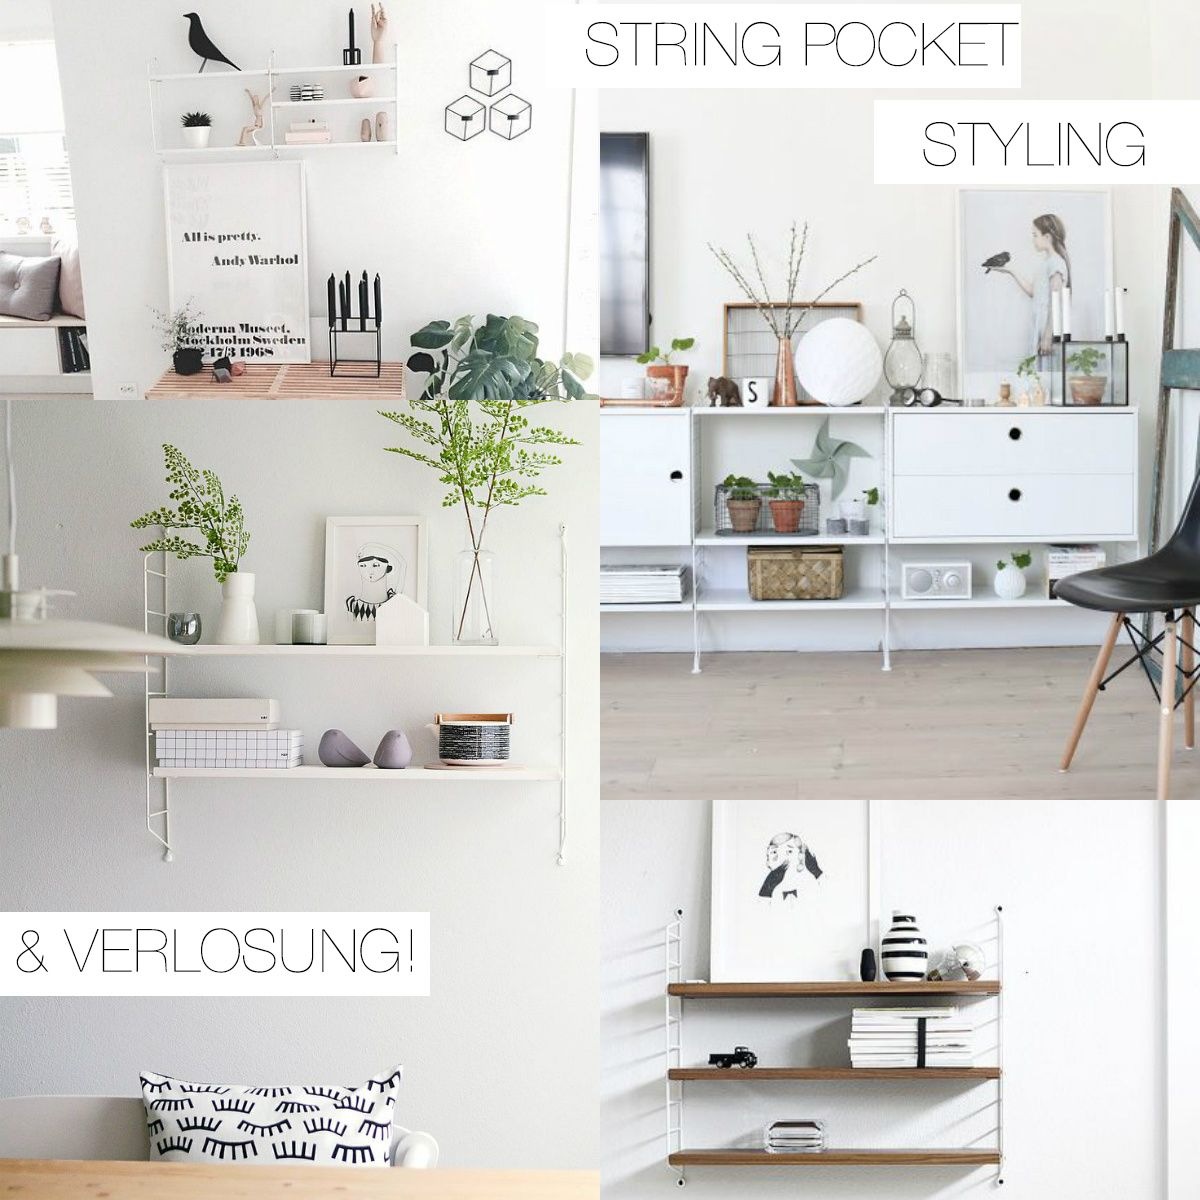 String Pocket Regal Styling U0026 VERLOSUNG | Pinspiration Images